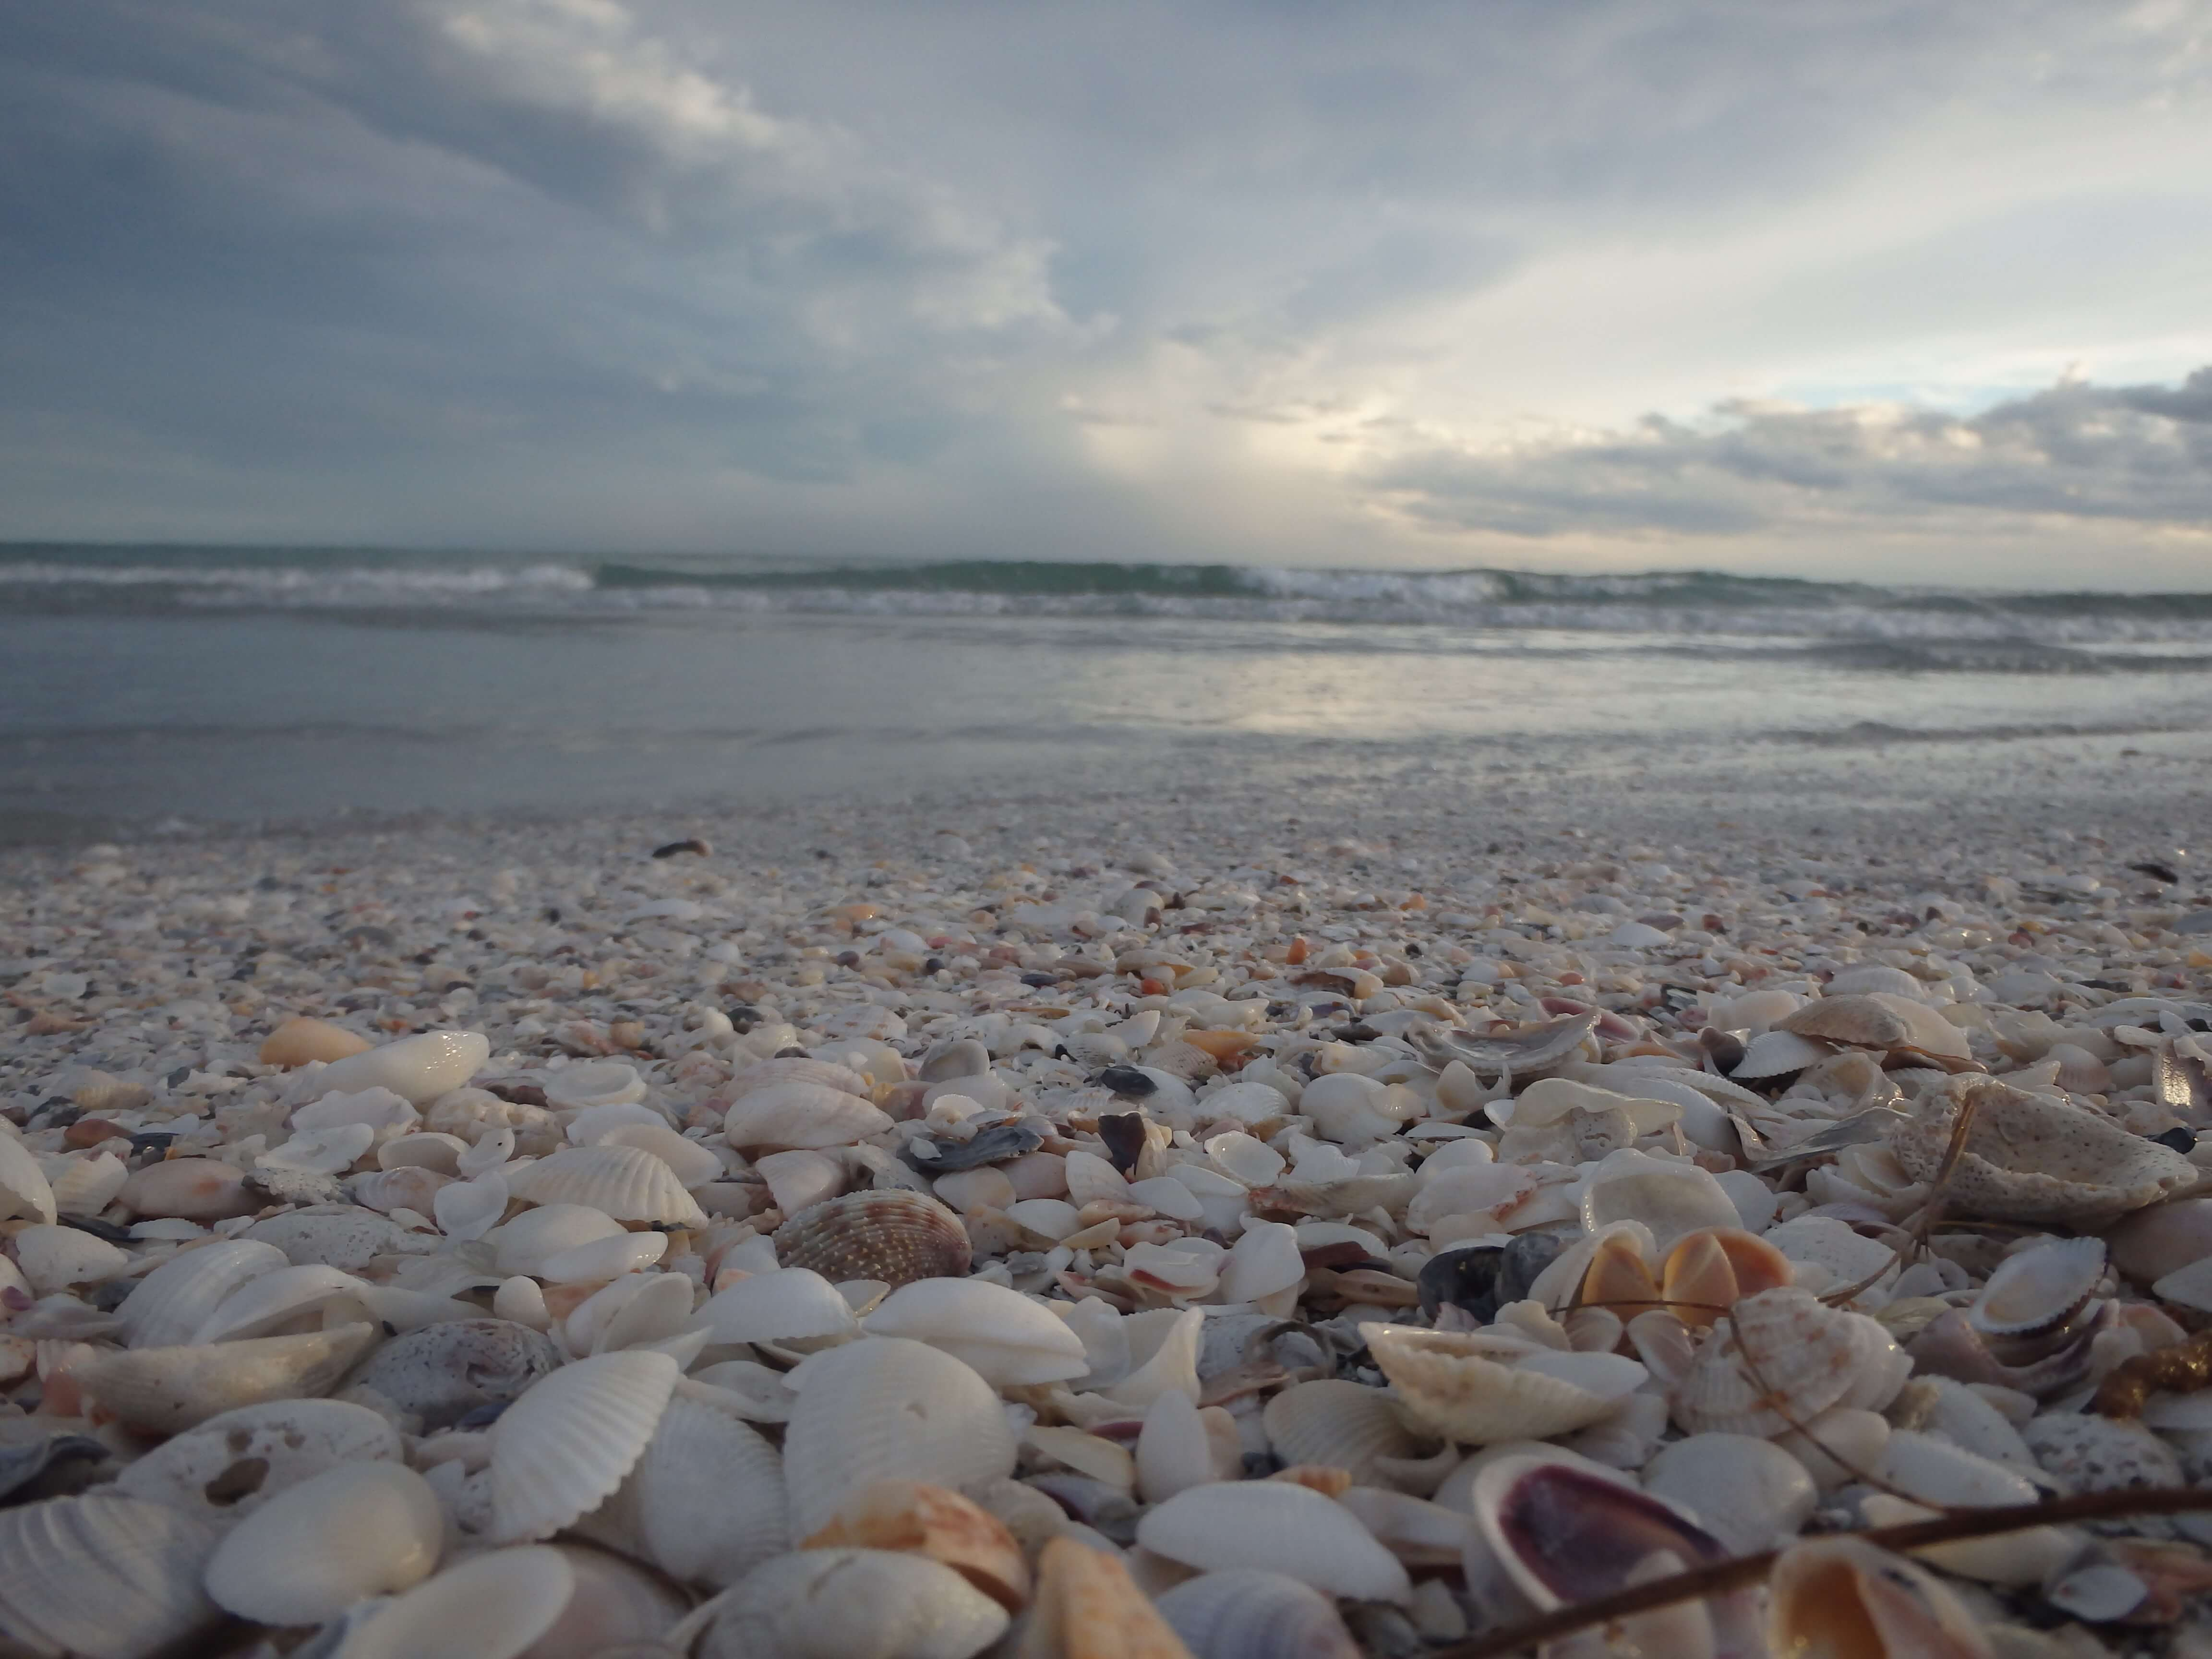 Visit Sanibel Island to Find Amazing Shells